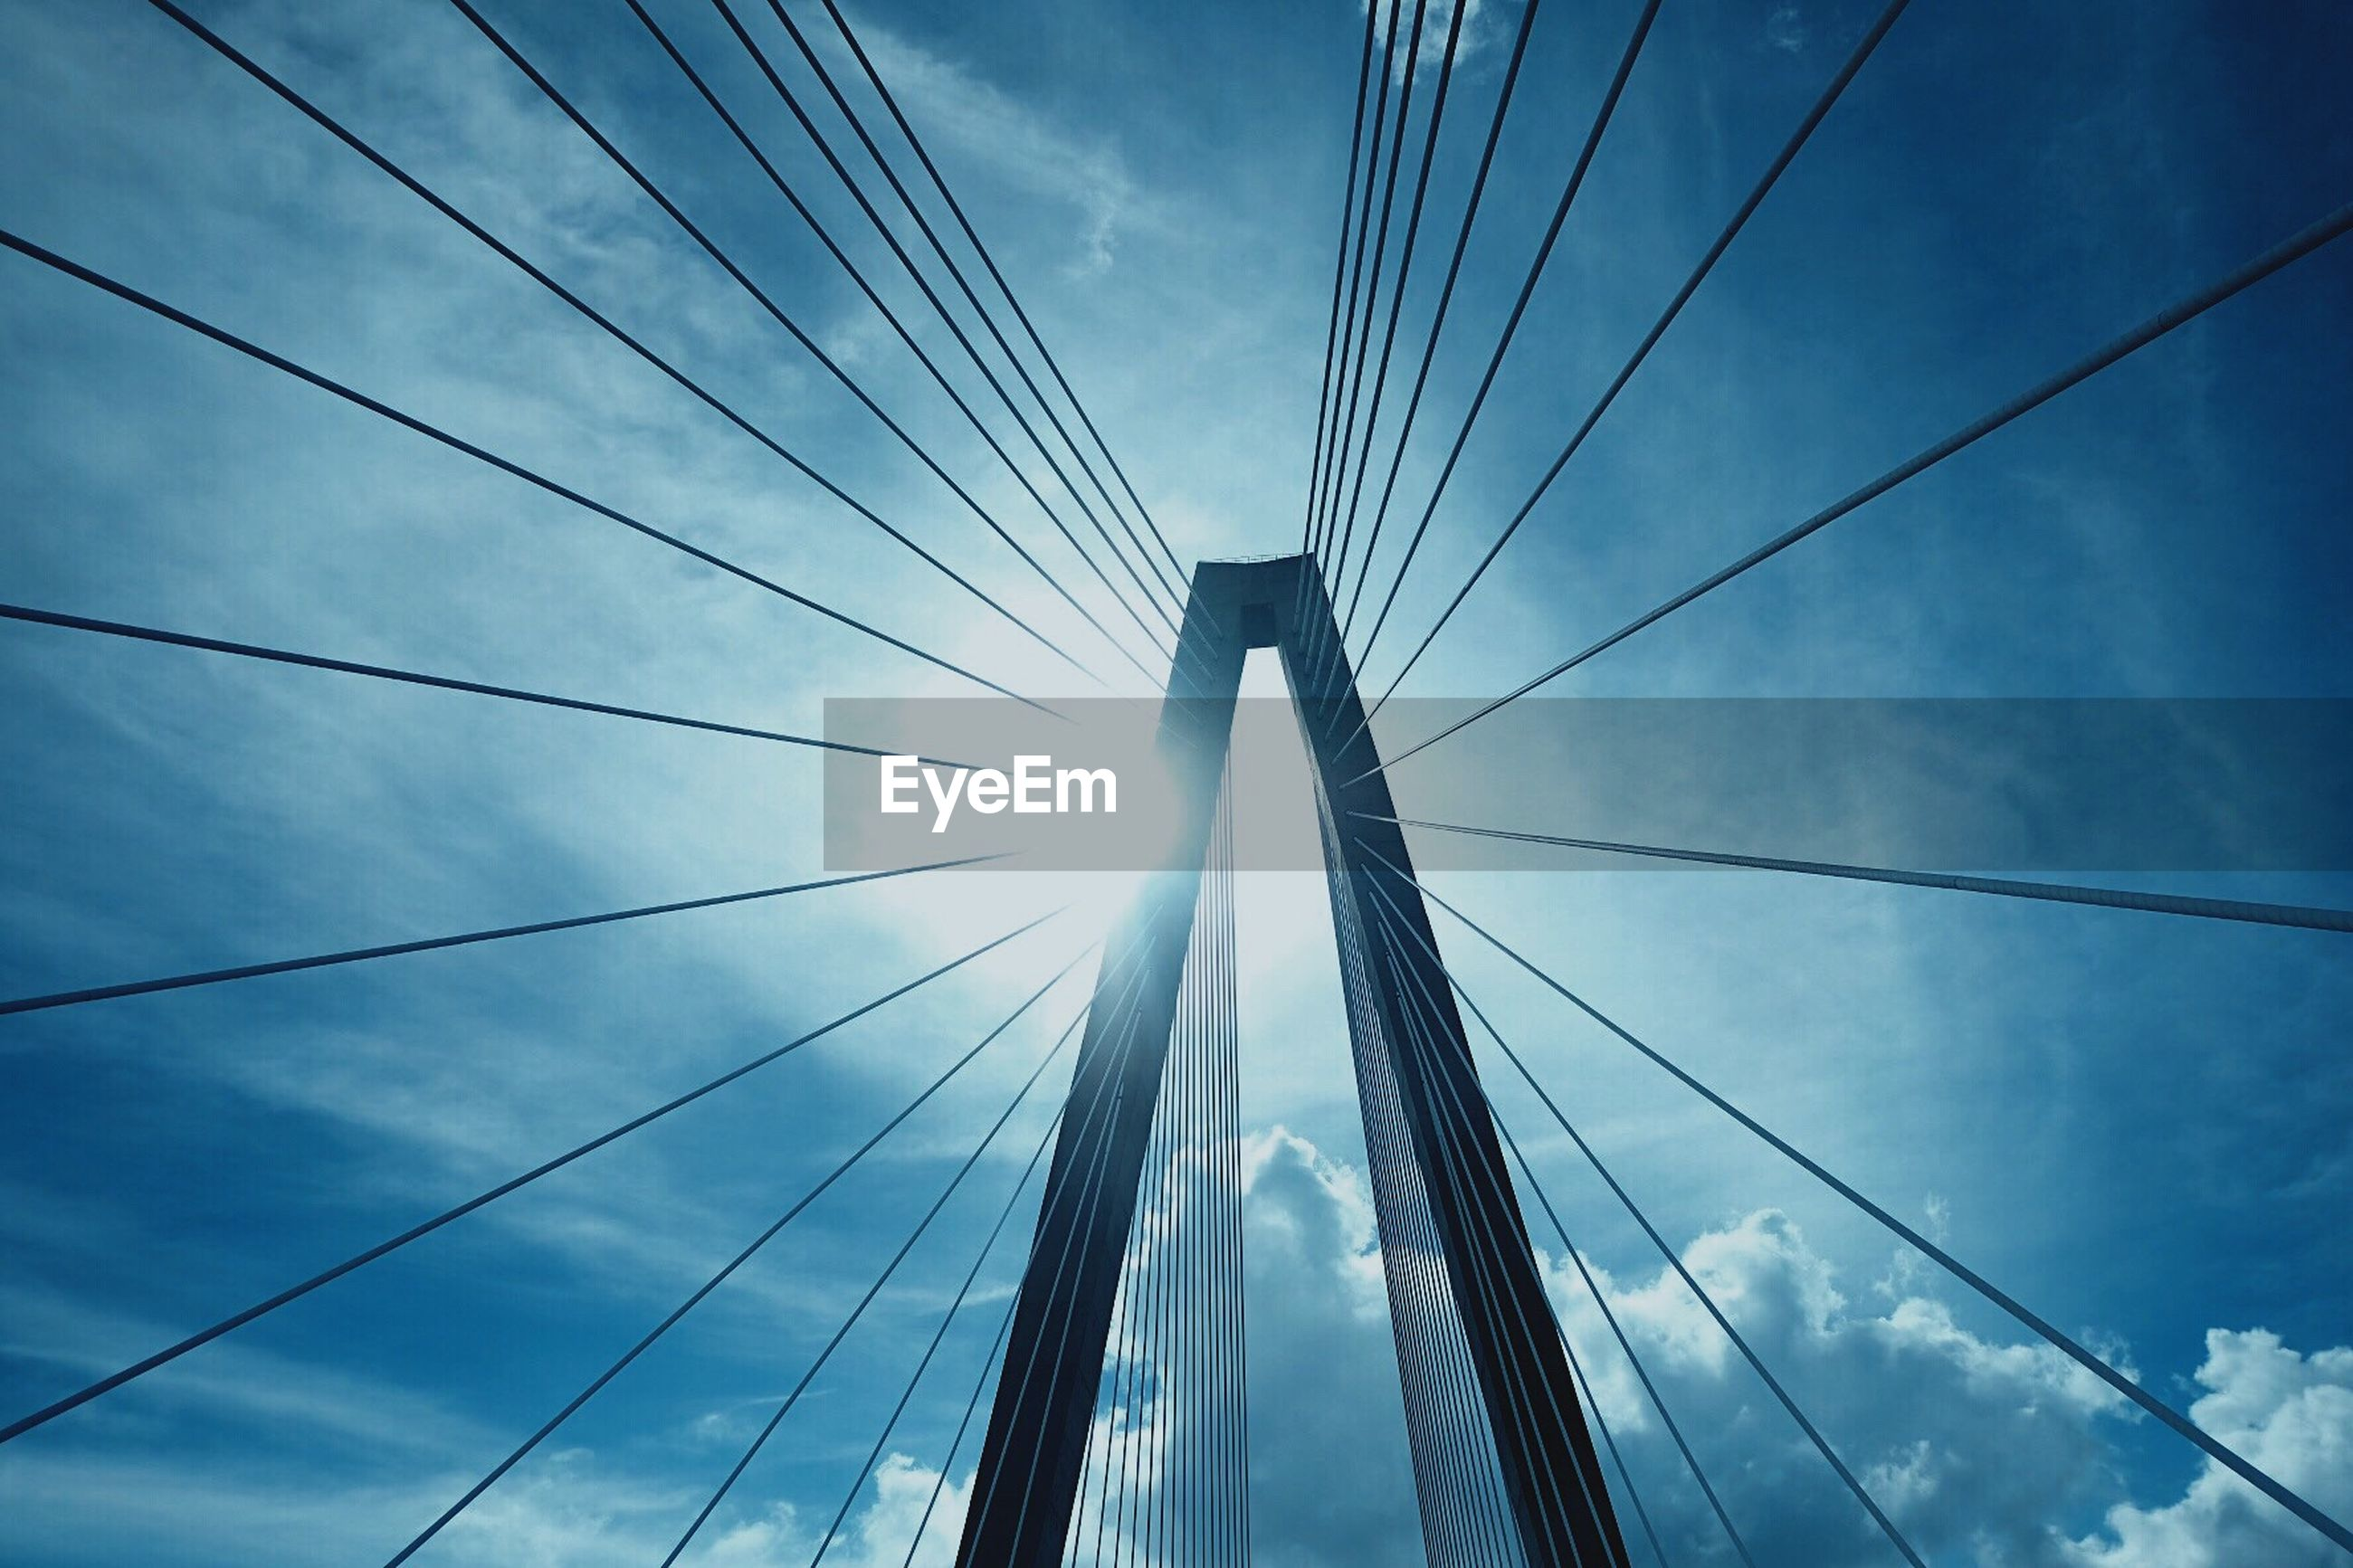 connection, low angle view, engineering, architecture, sky, built structure, suspension bridge, cable, transportation, bridge - man made structure, cloud - sky, outdoors, day, modern, blue, no people, skyscraper, building exterior, city